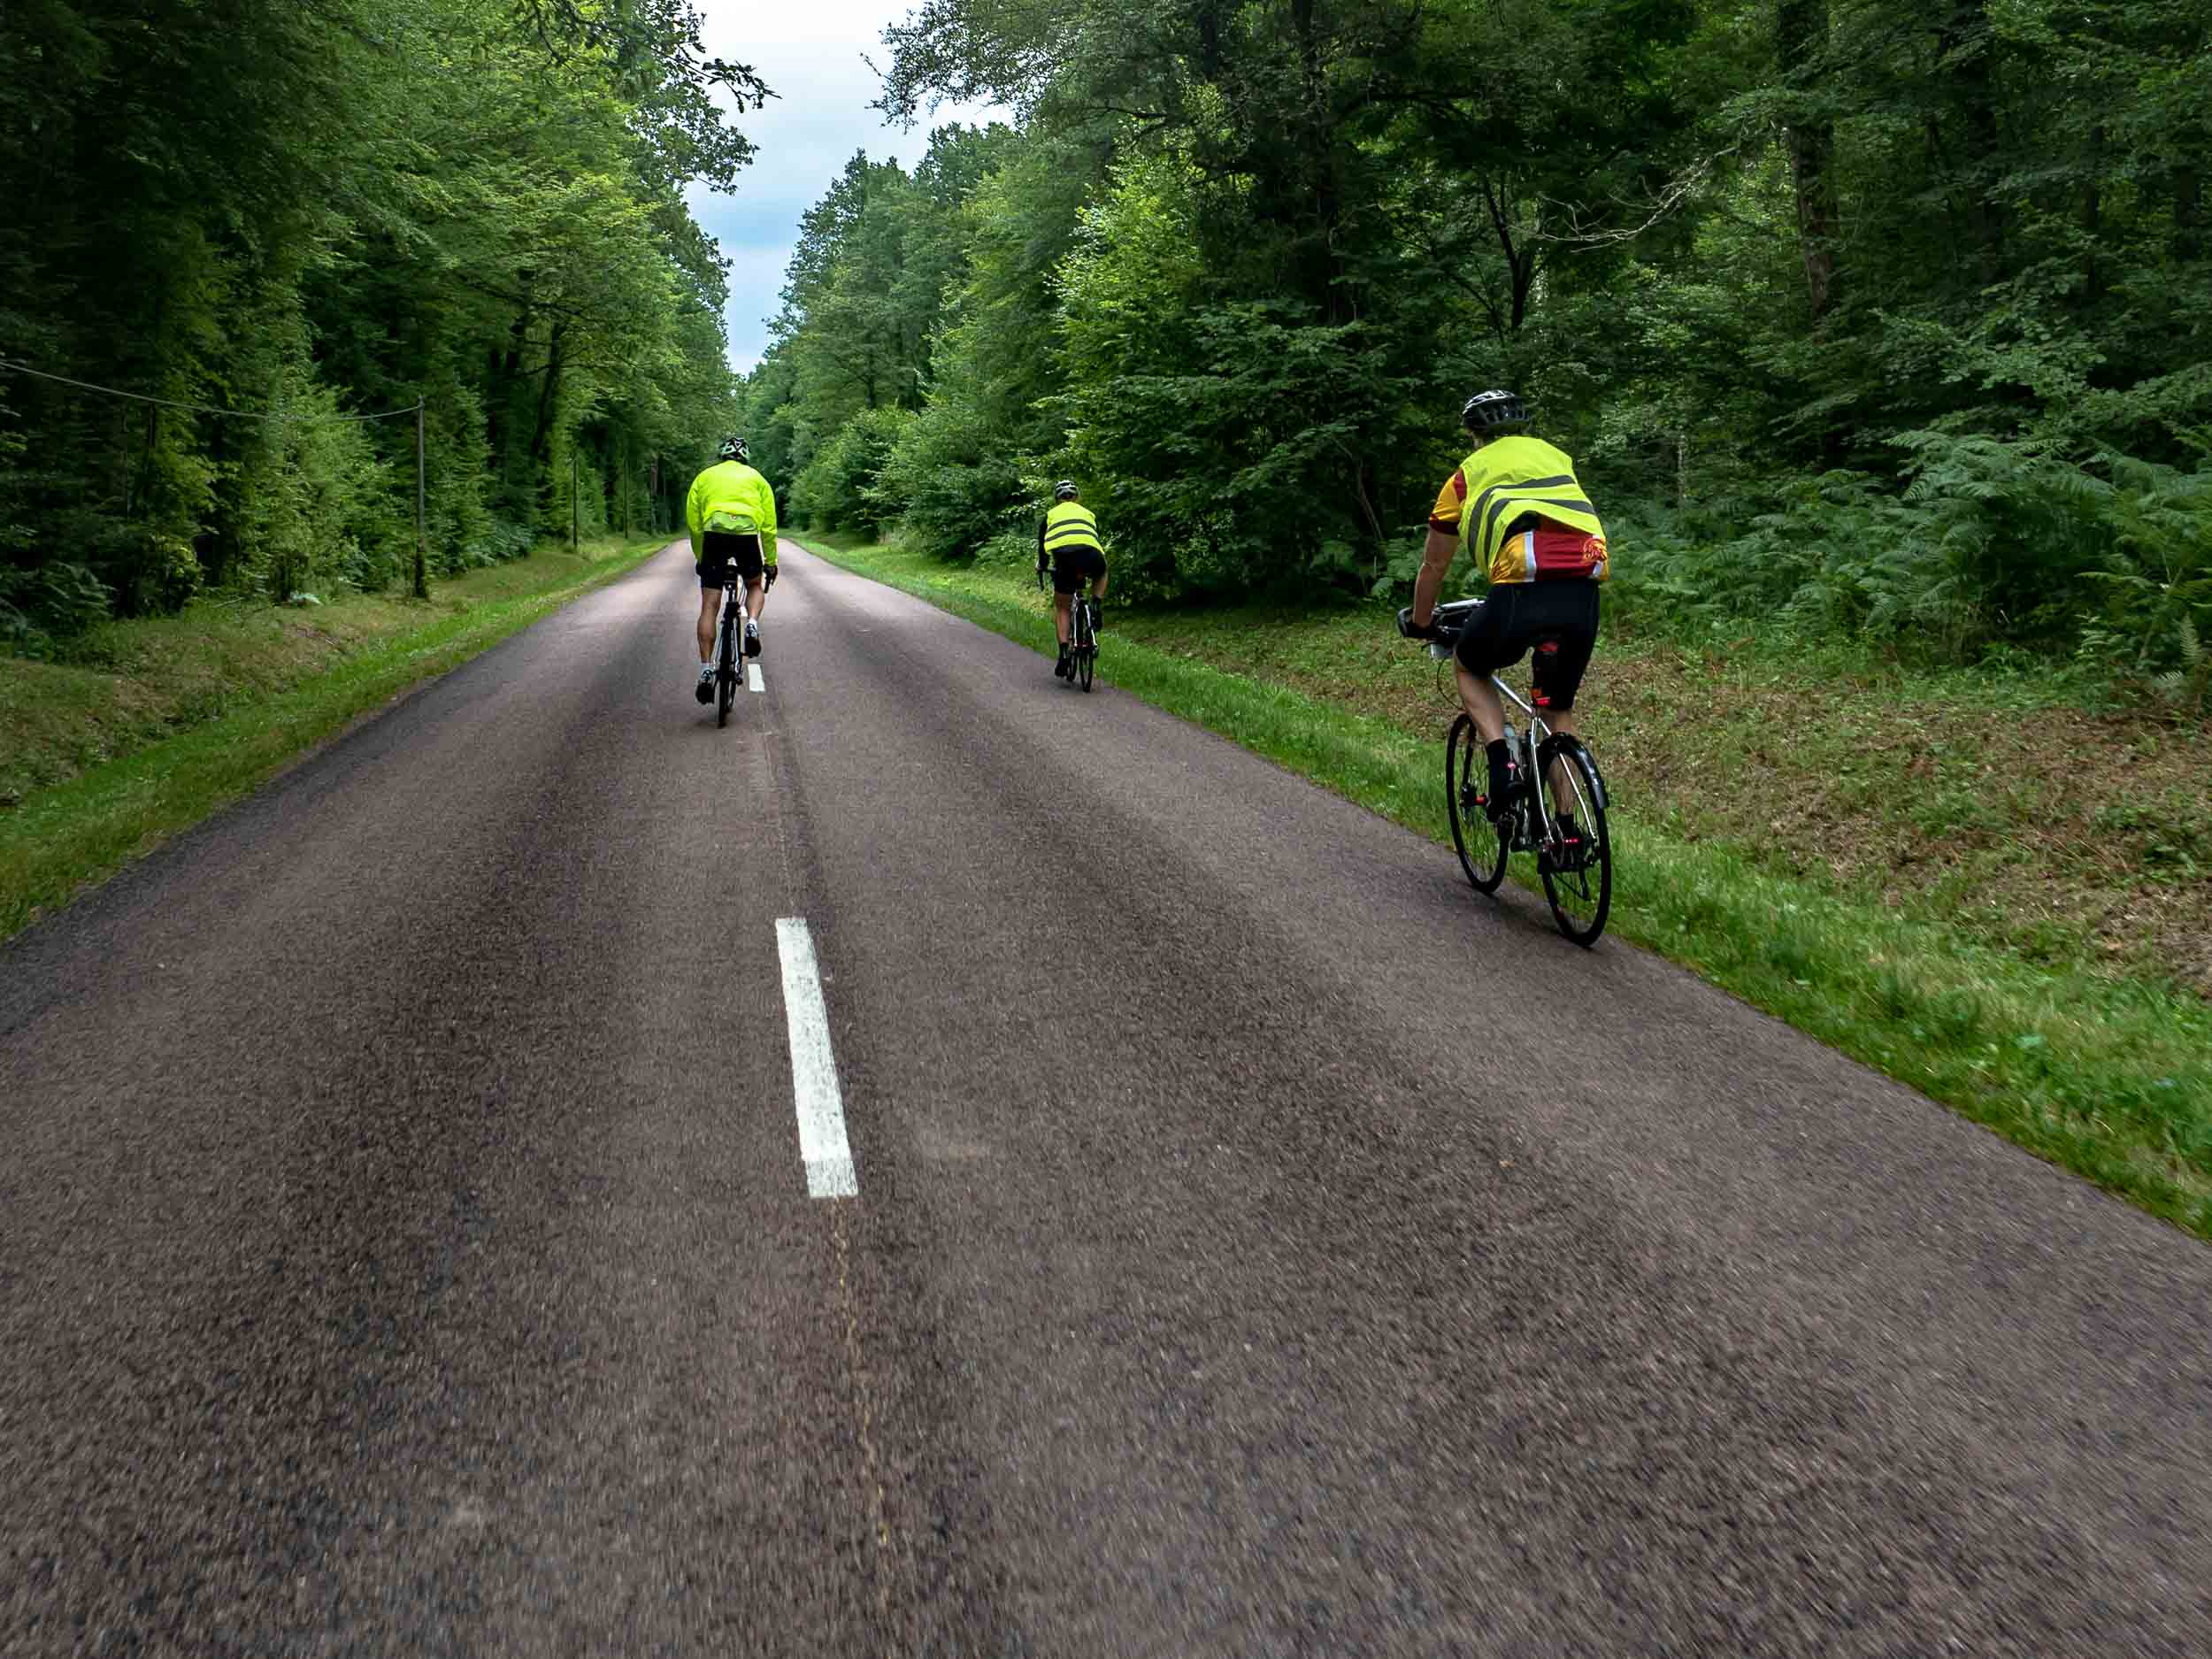 tda-cycling-paris-freiburg-forest.jpg